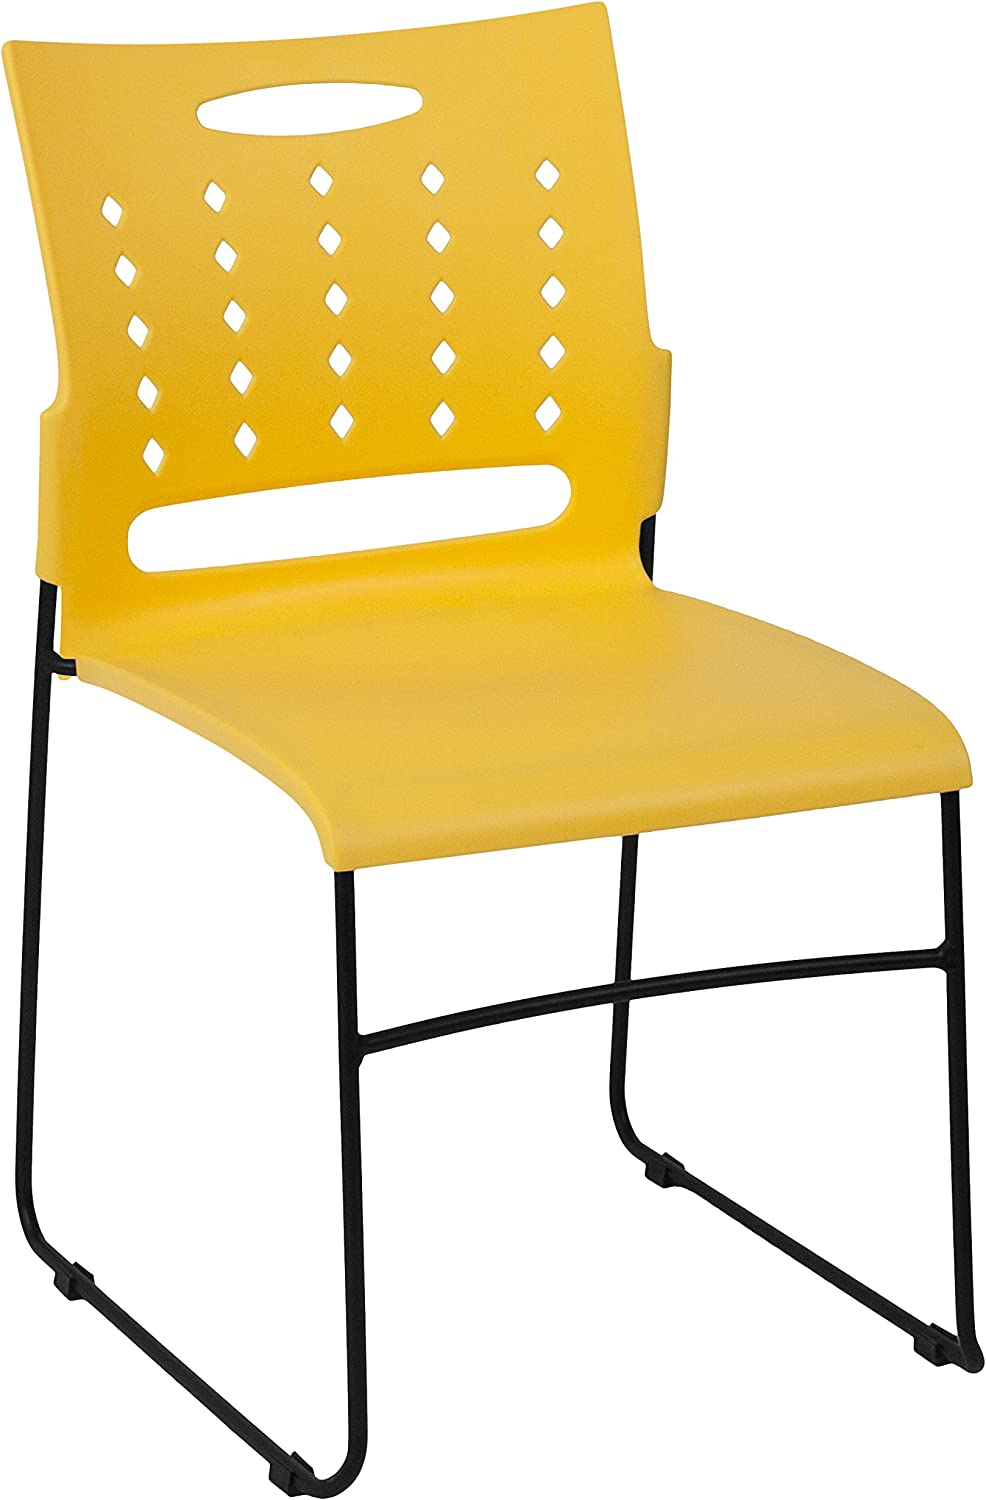 Flash Furniture HERCULES Series 881 lb. Capacity Yellow Sled Base Stack Chair with Air-Vent Back